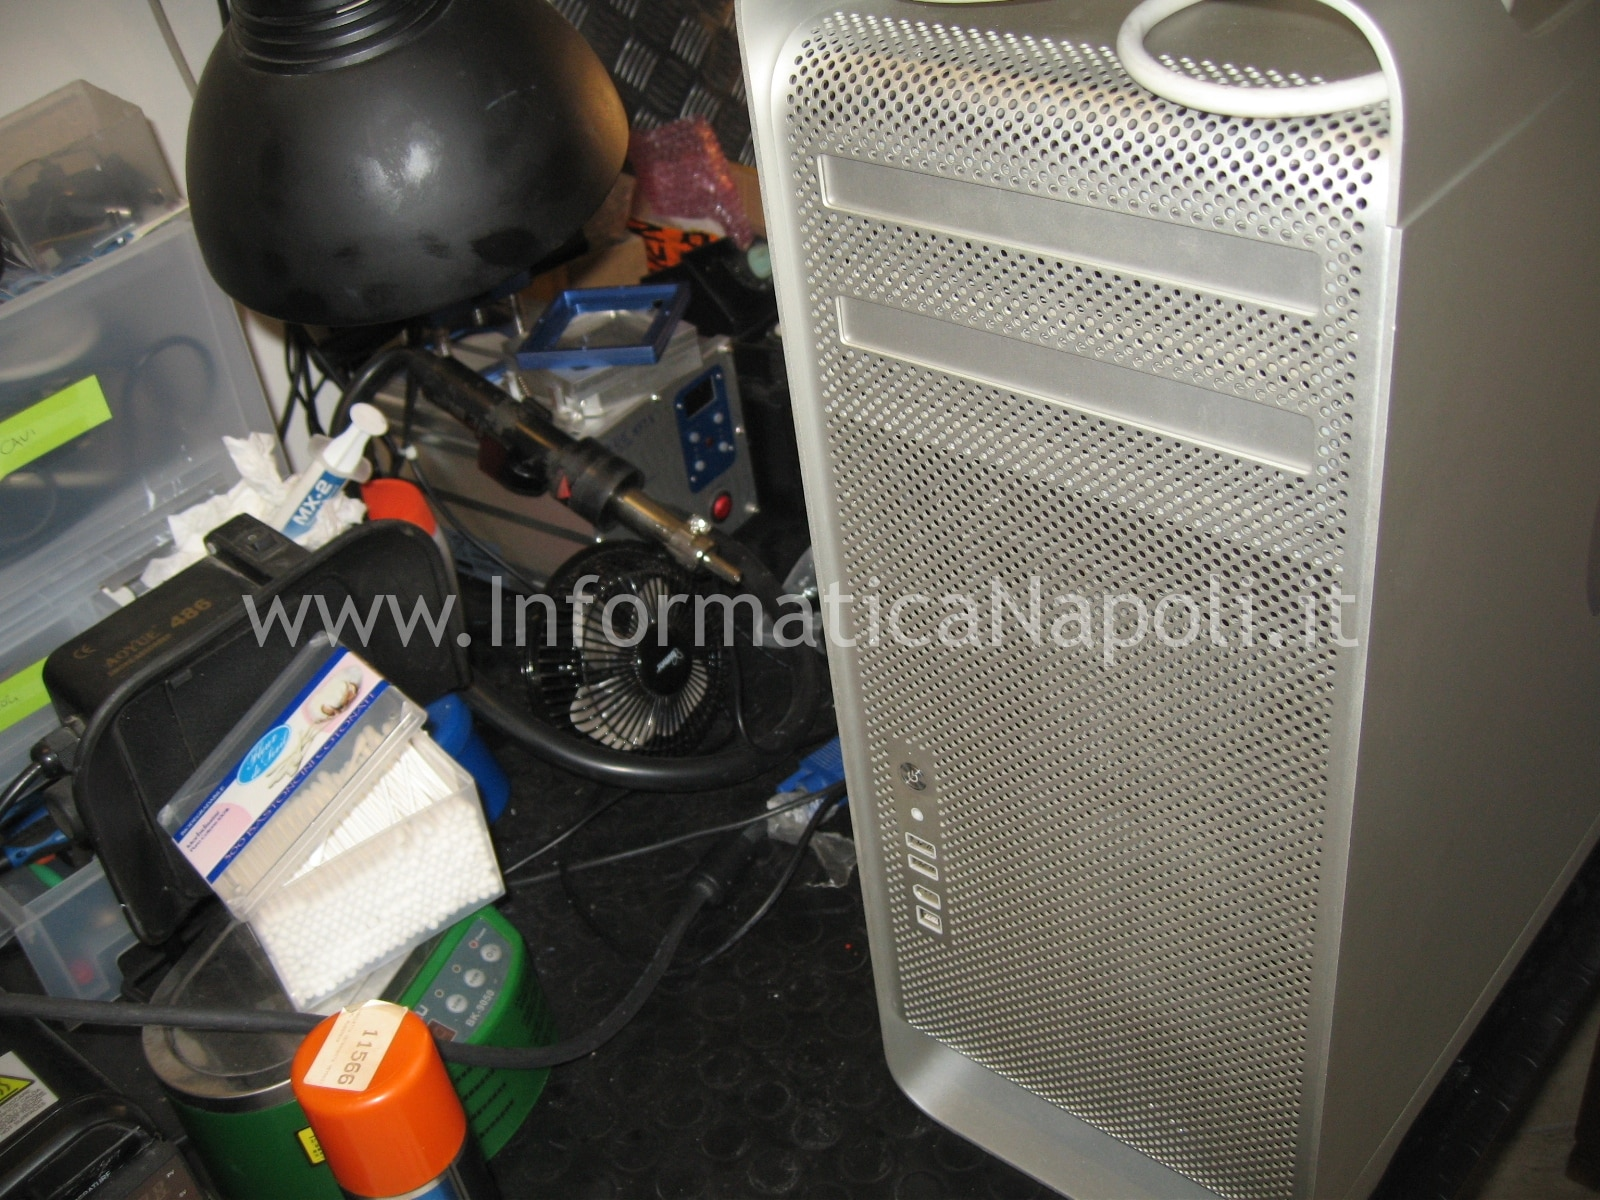 Apple Mac Pro A1186 EMC 2180